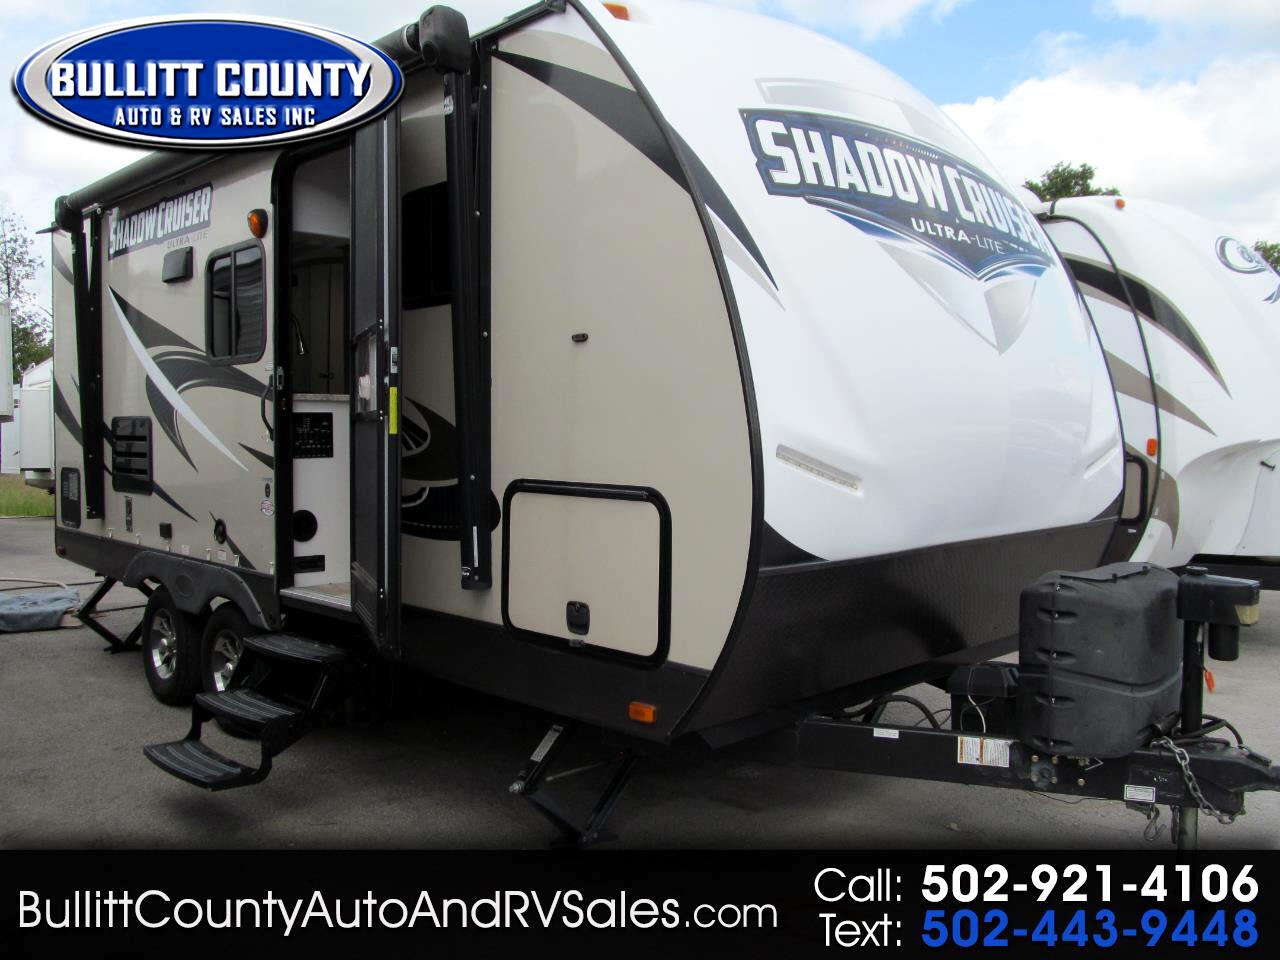 Cruiser RV Shadow Cruiser 195WBS 2017